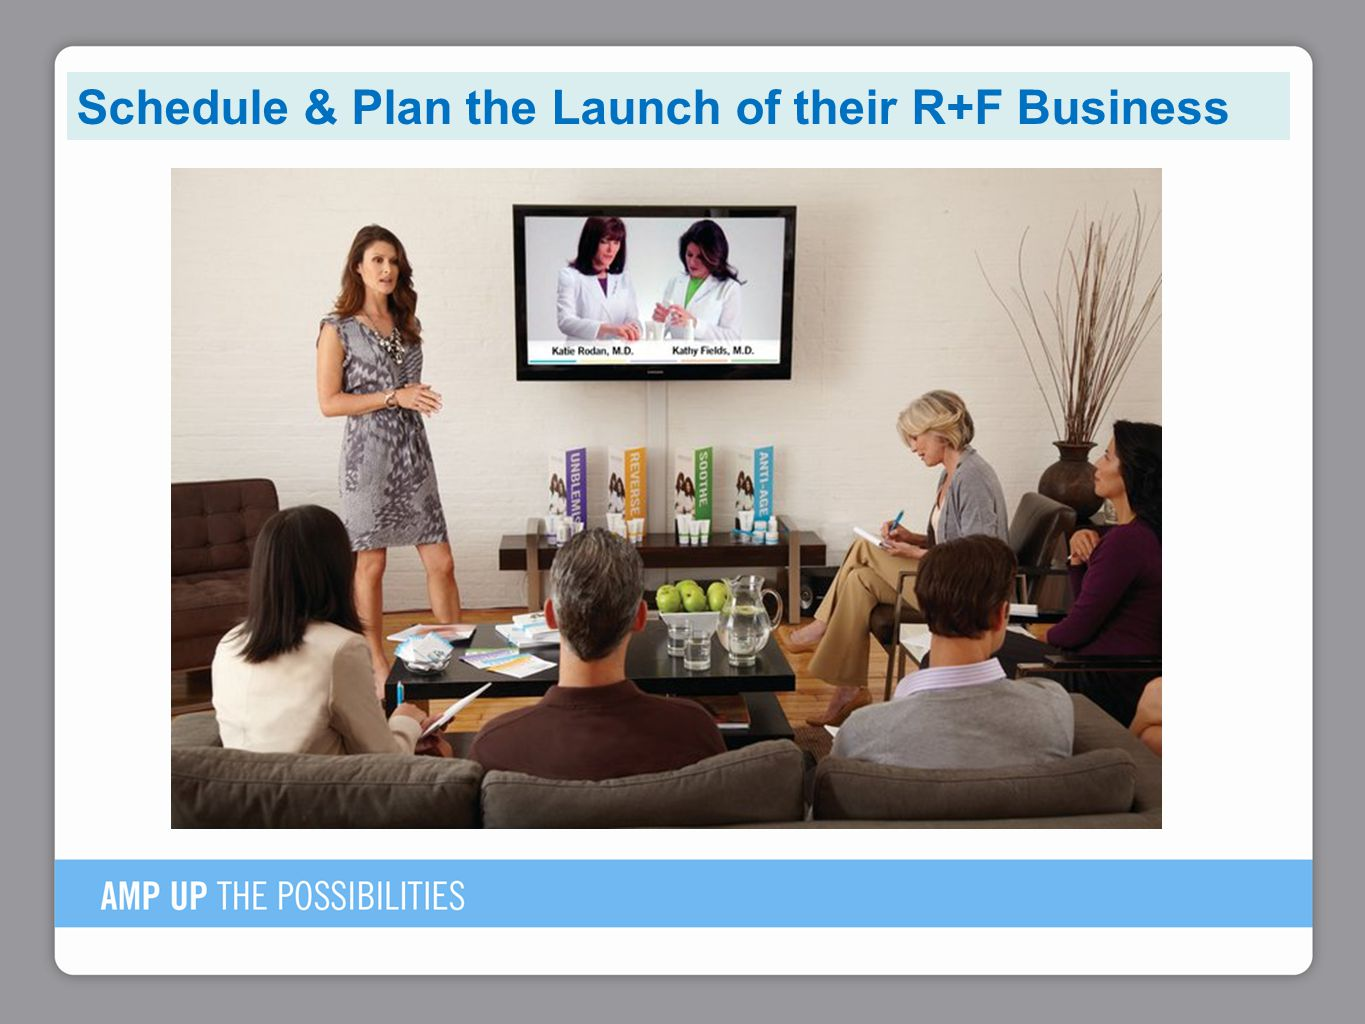 Schedule & Plan the Launch of their R+F Business